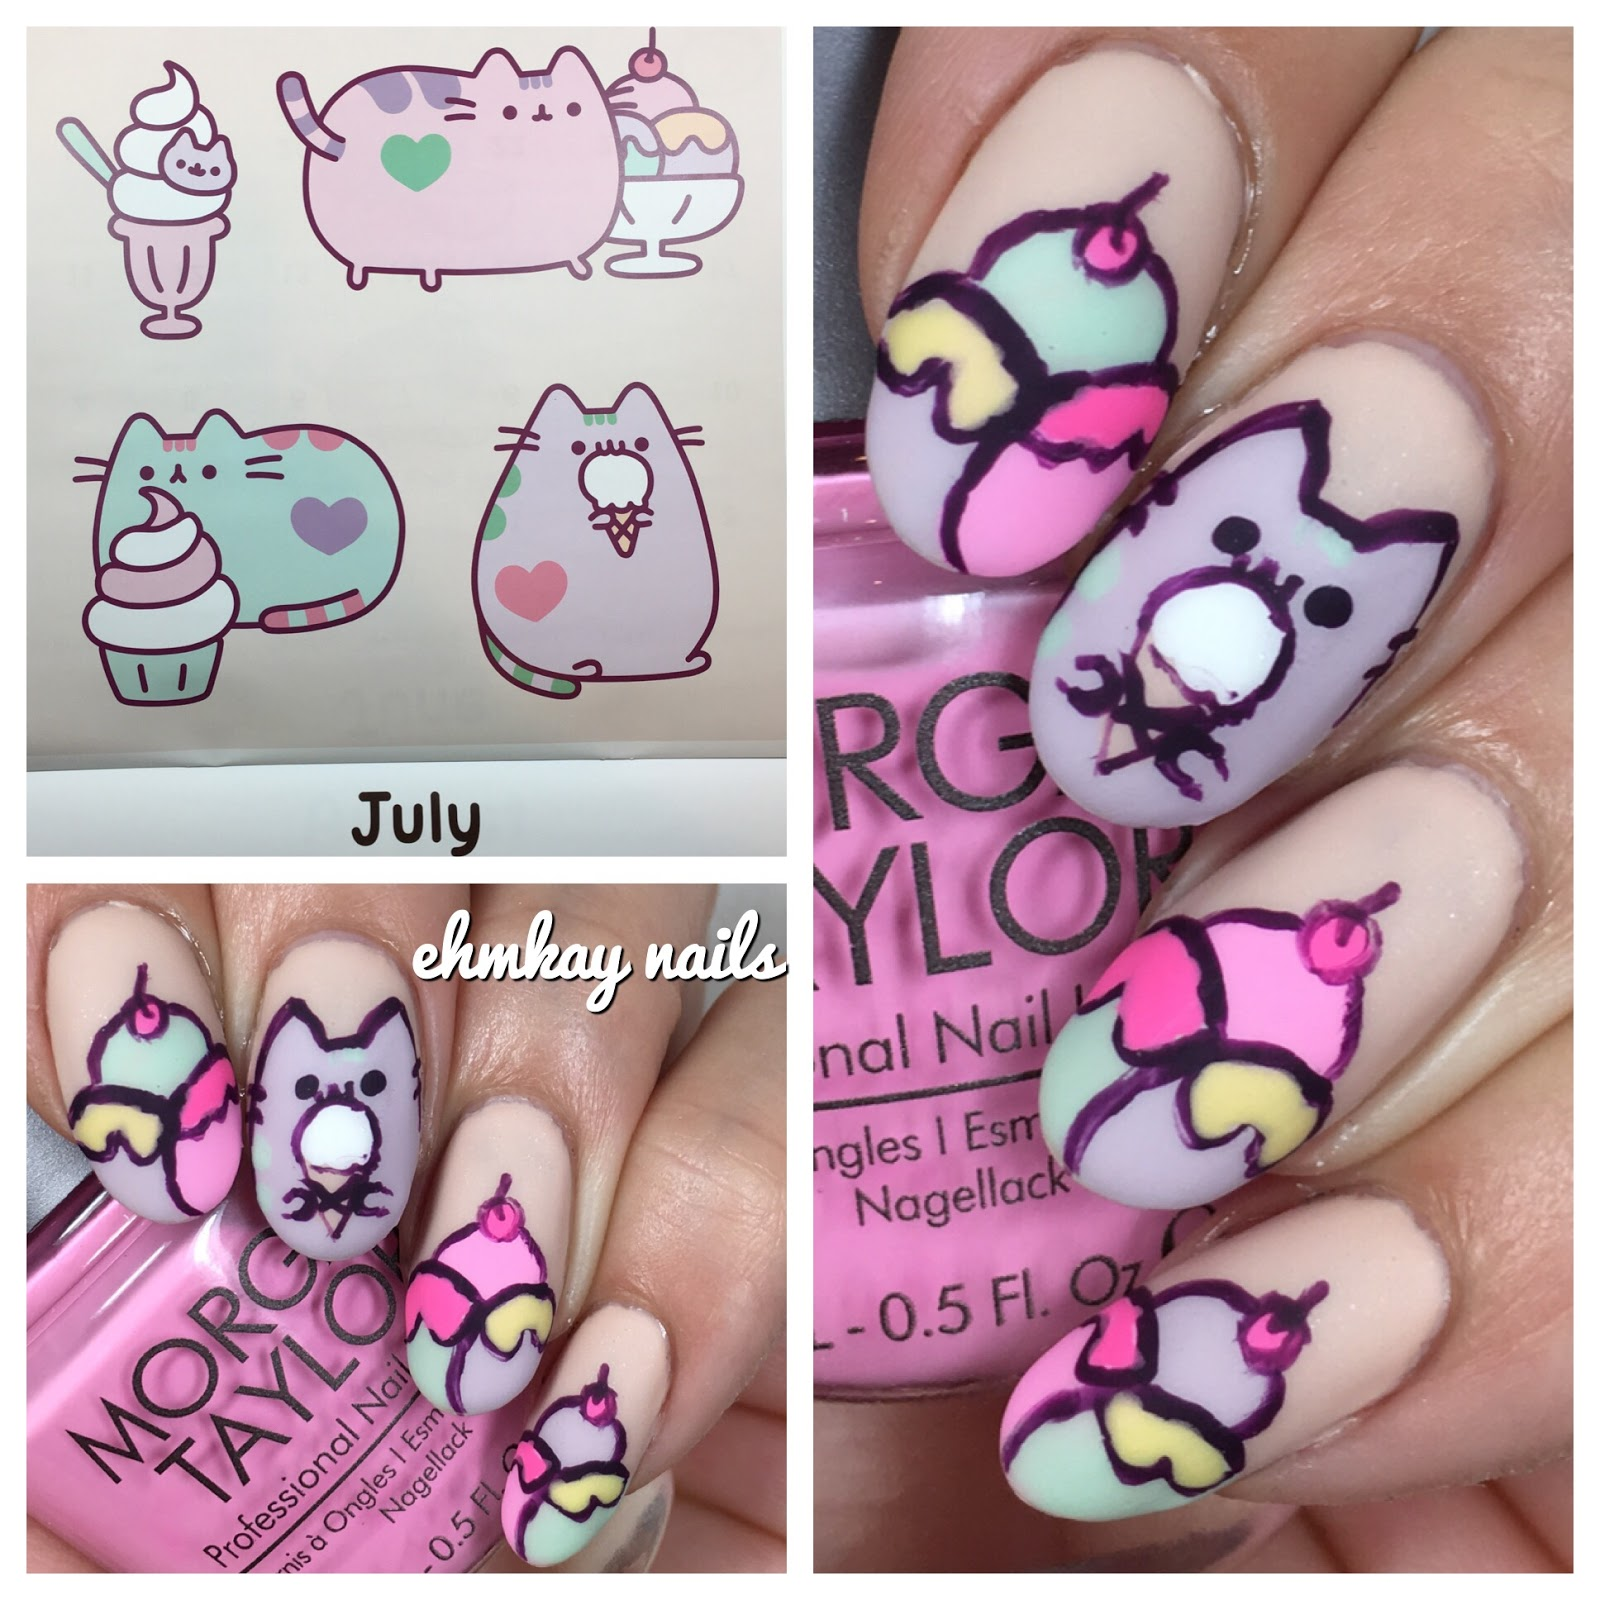 I Want To Cuddle With You Quotes: Ehmkay Nails: Pusheen Calendar Series: July 2017 Pusheen